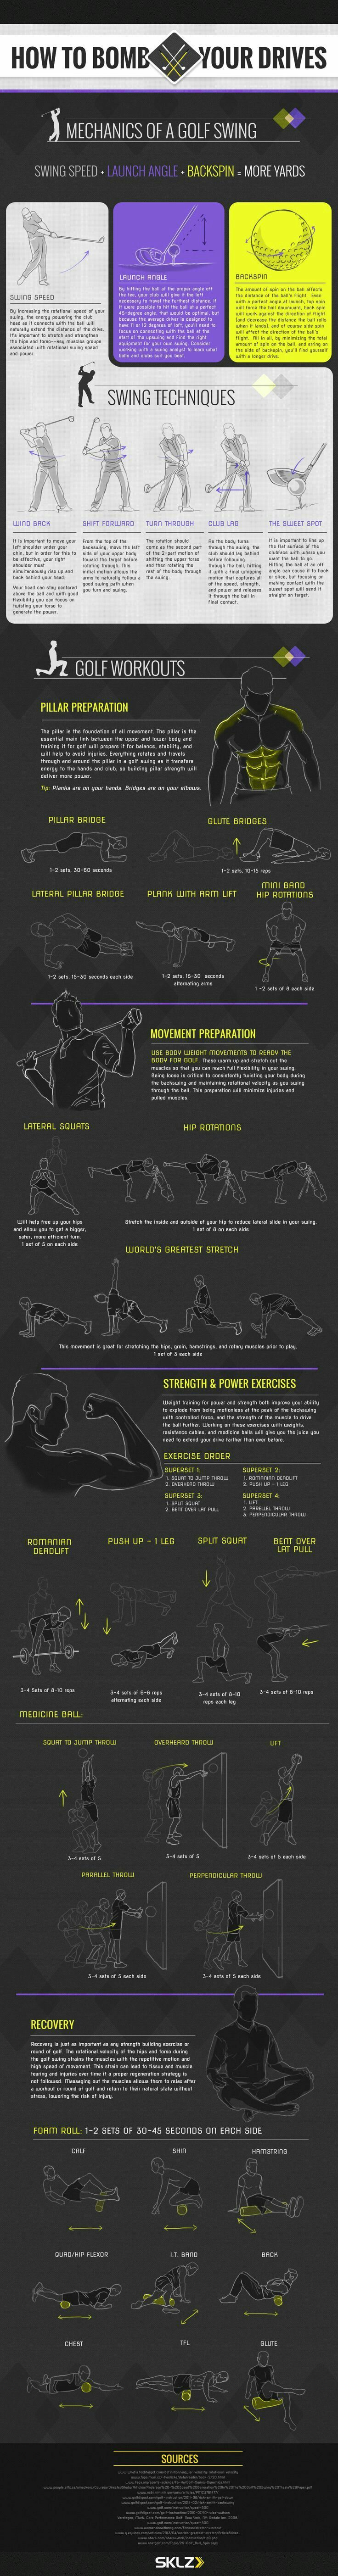 How to improve your golf game!! Golf swing techniques, golf workout, golf recovery! Lots of golf tips in this infographic!